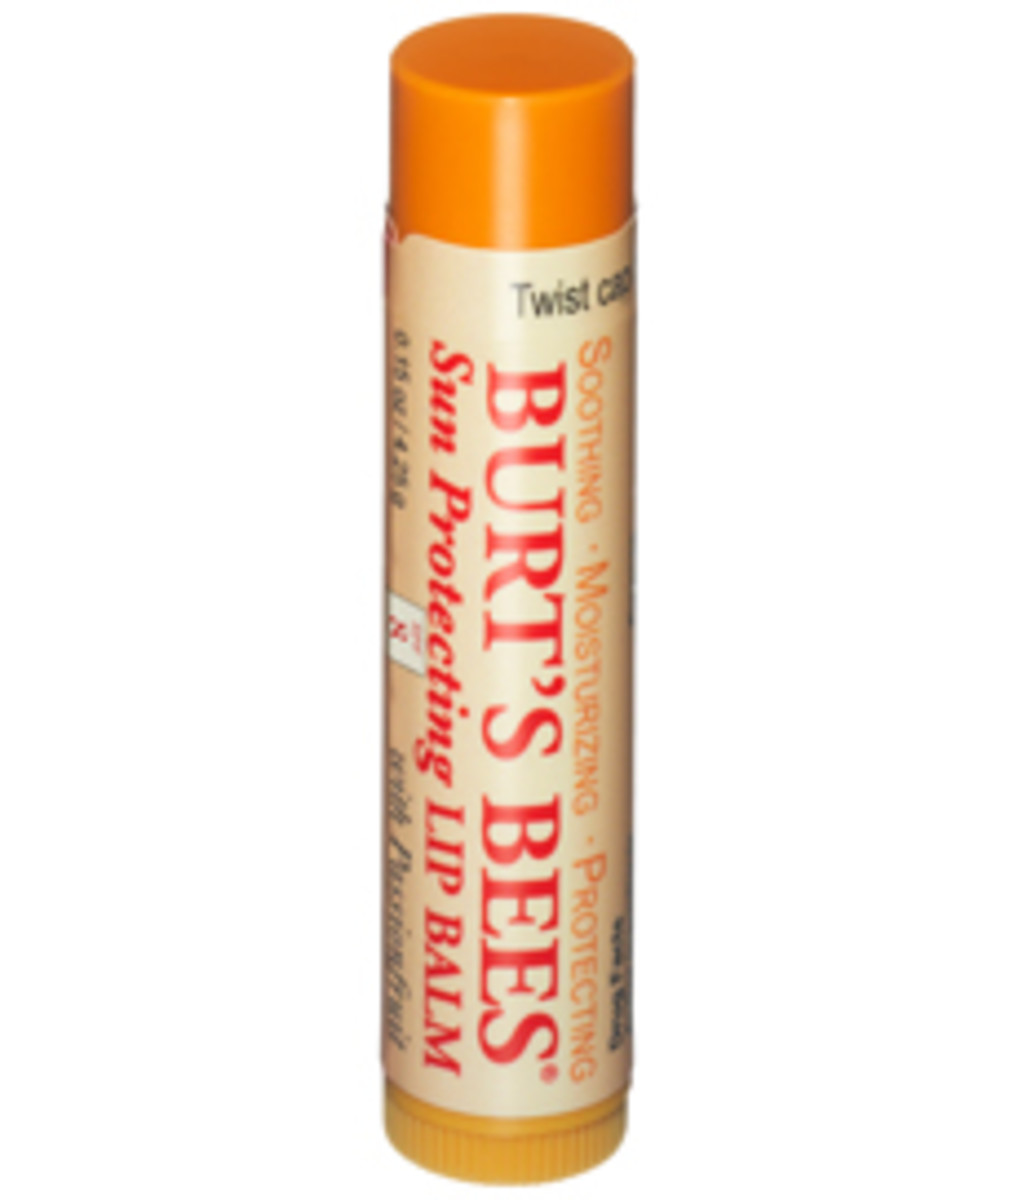 new-products-burts-bees-0509